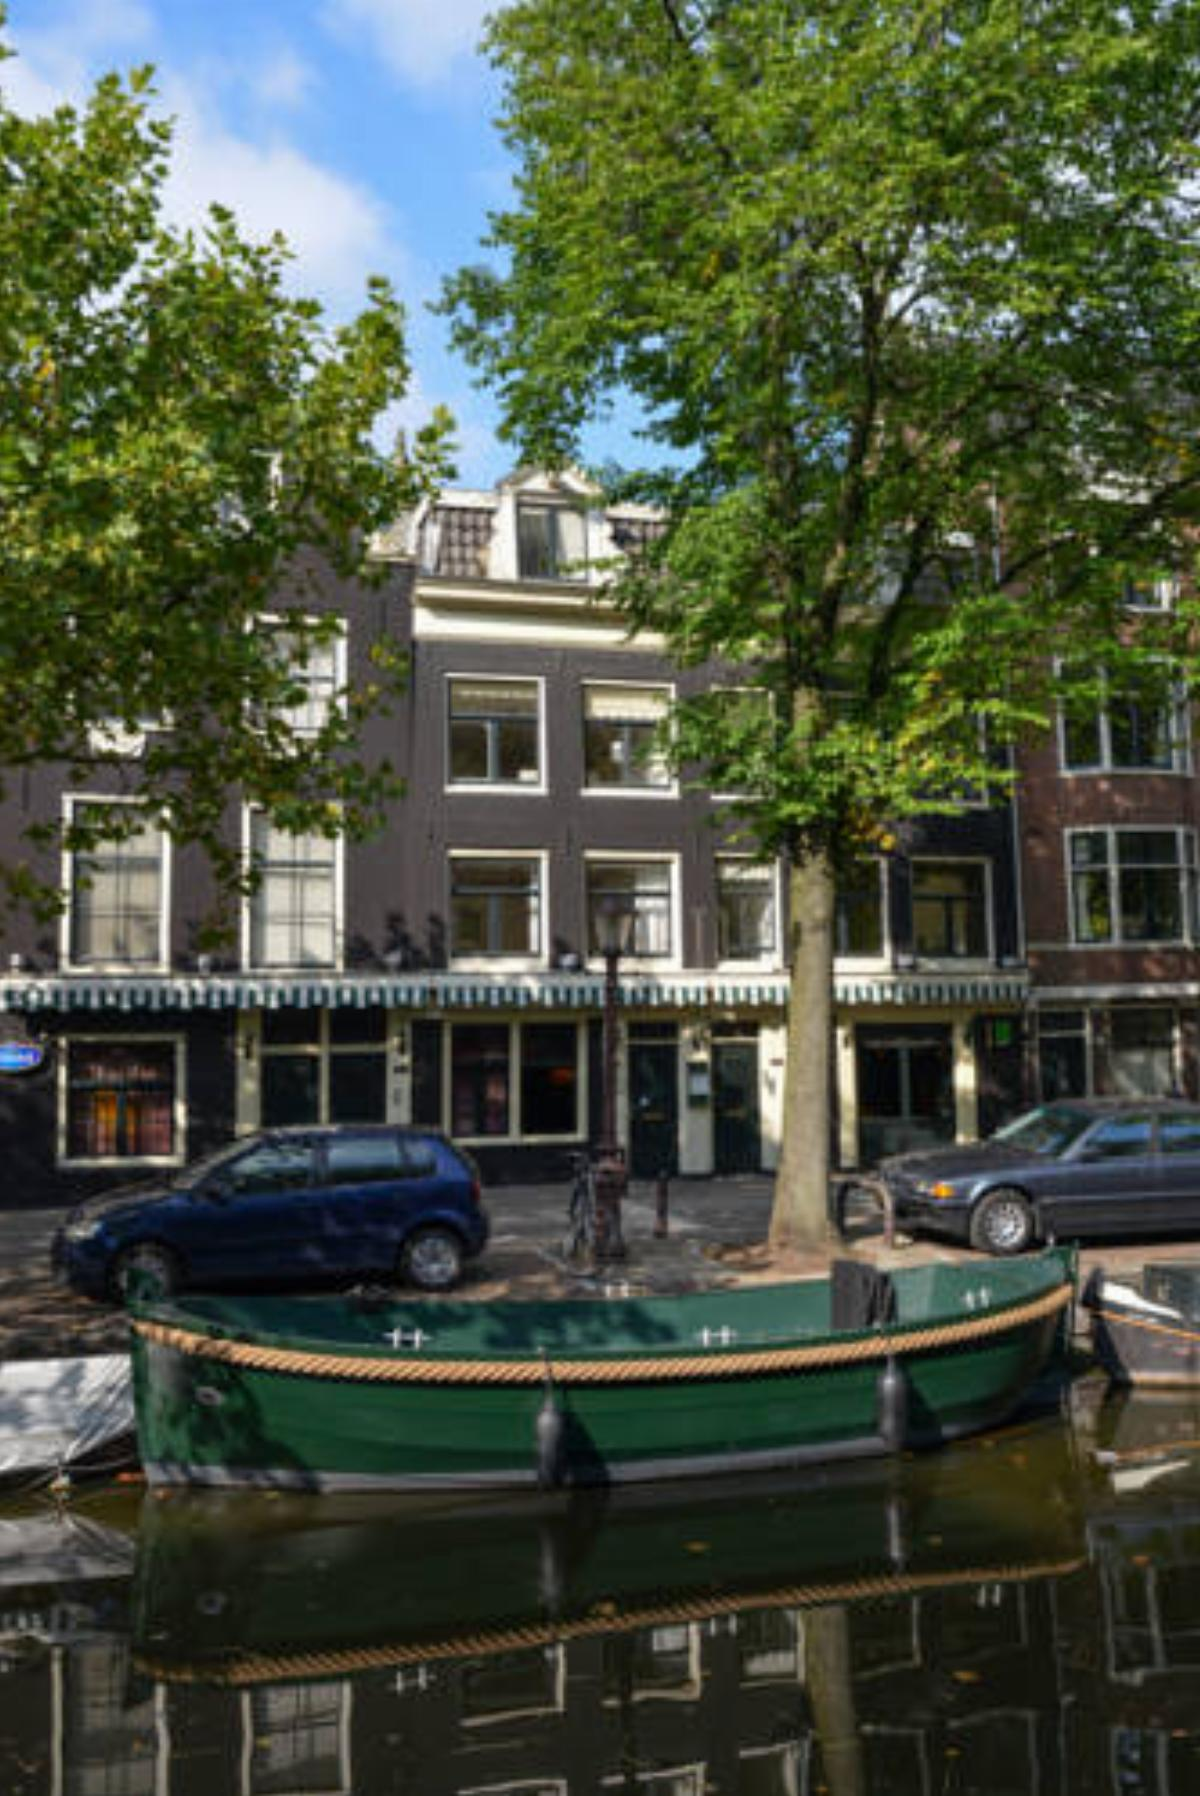 Green Apple Holiday - Lijnbaansgracht Hotel Amsterdam Netherlands